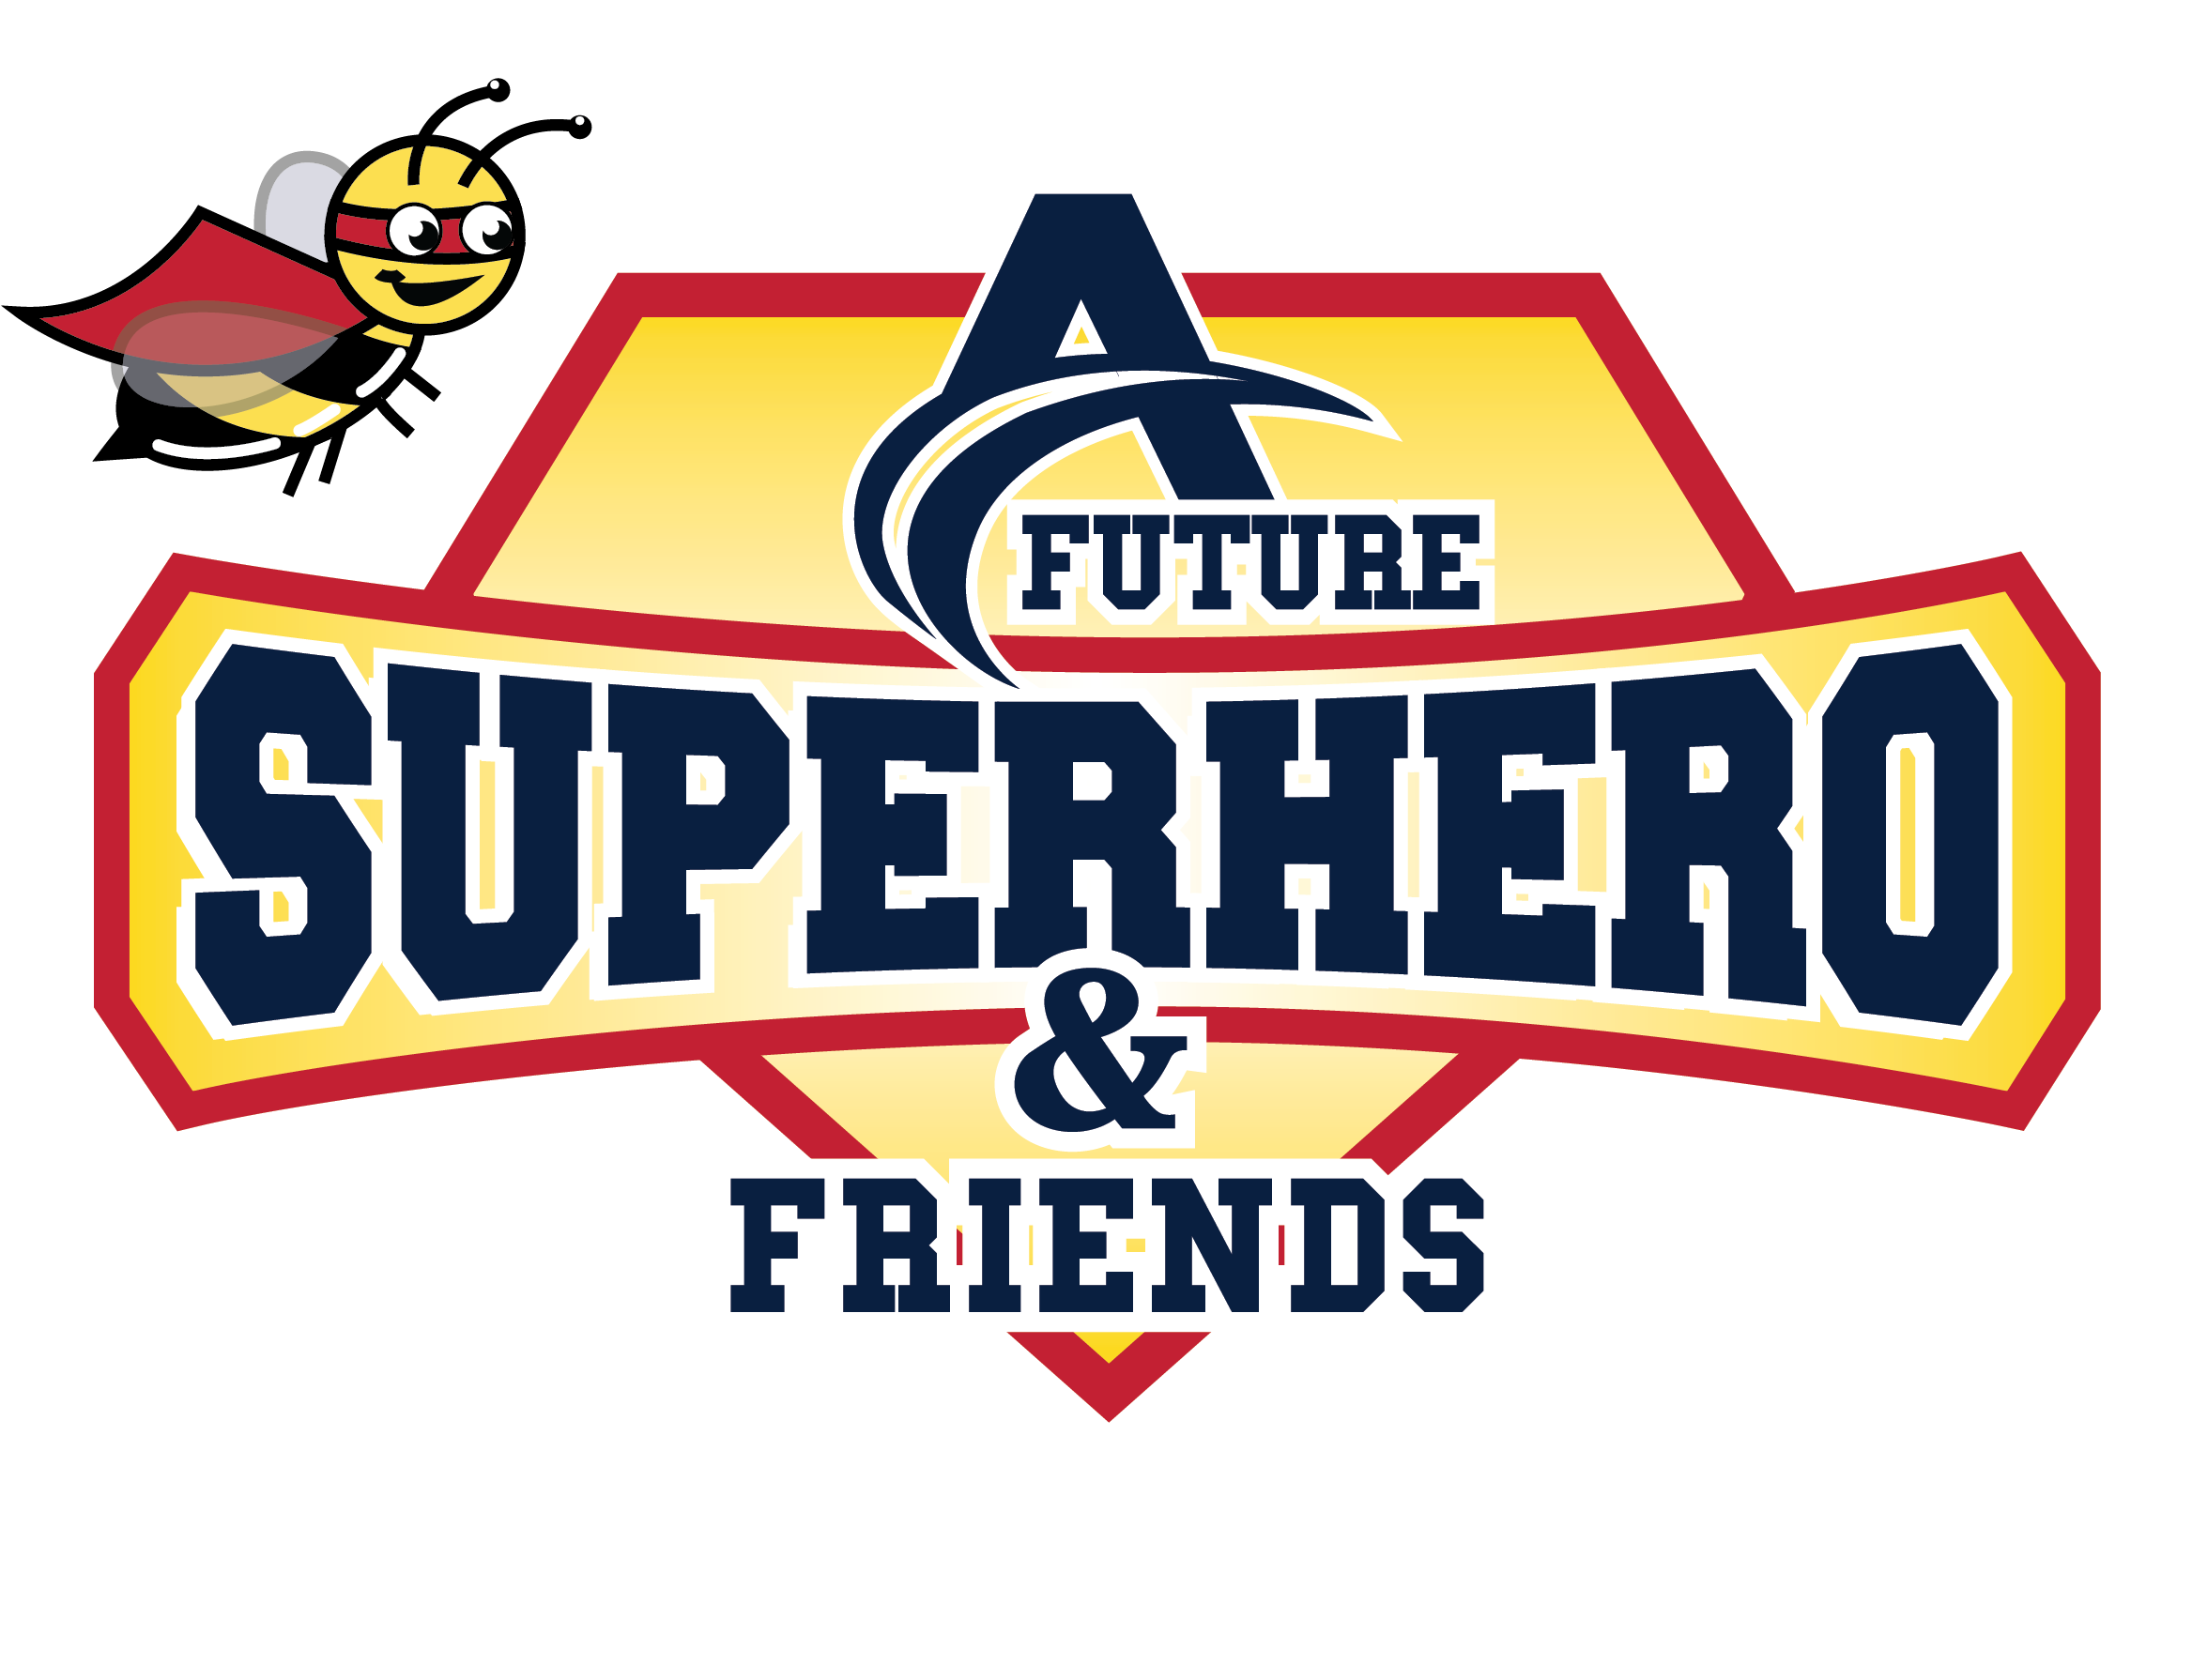 Afuturesuperhero & Friends Delivers Drop Off Steam/art Kits to Children Who Are Homeschooling During Covid-19